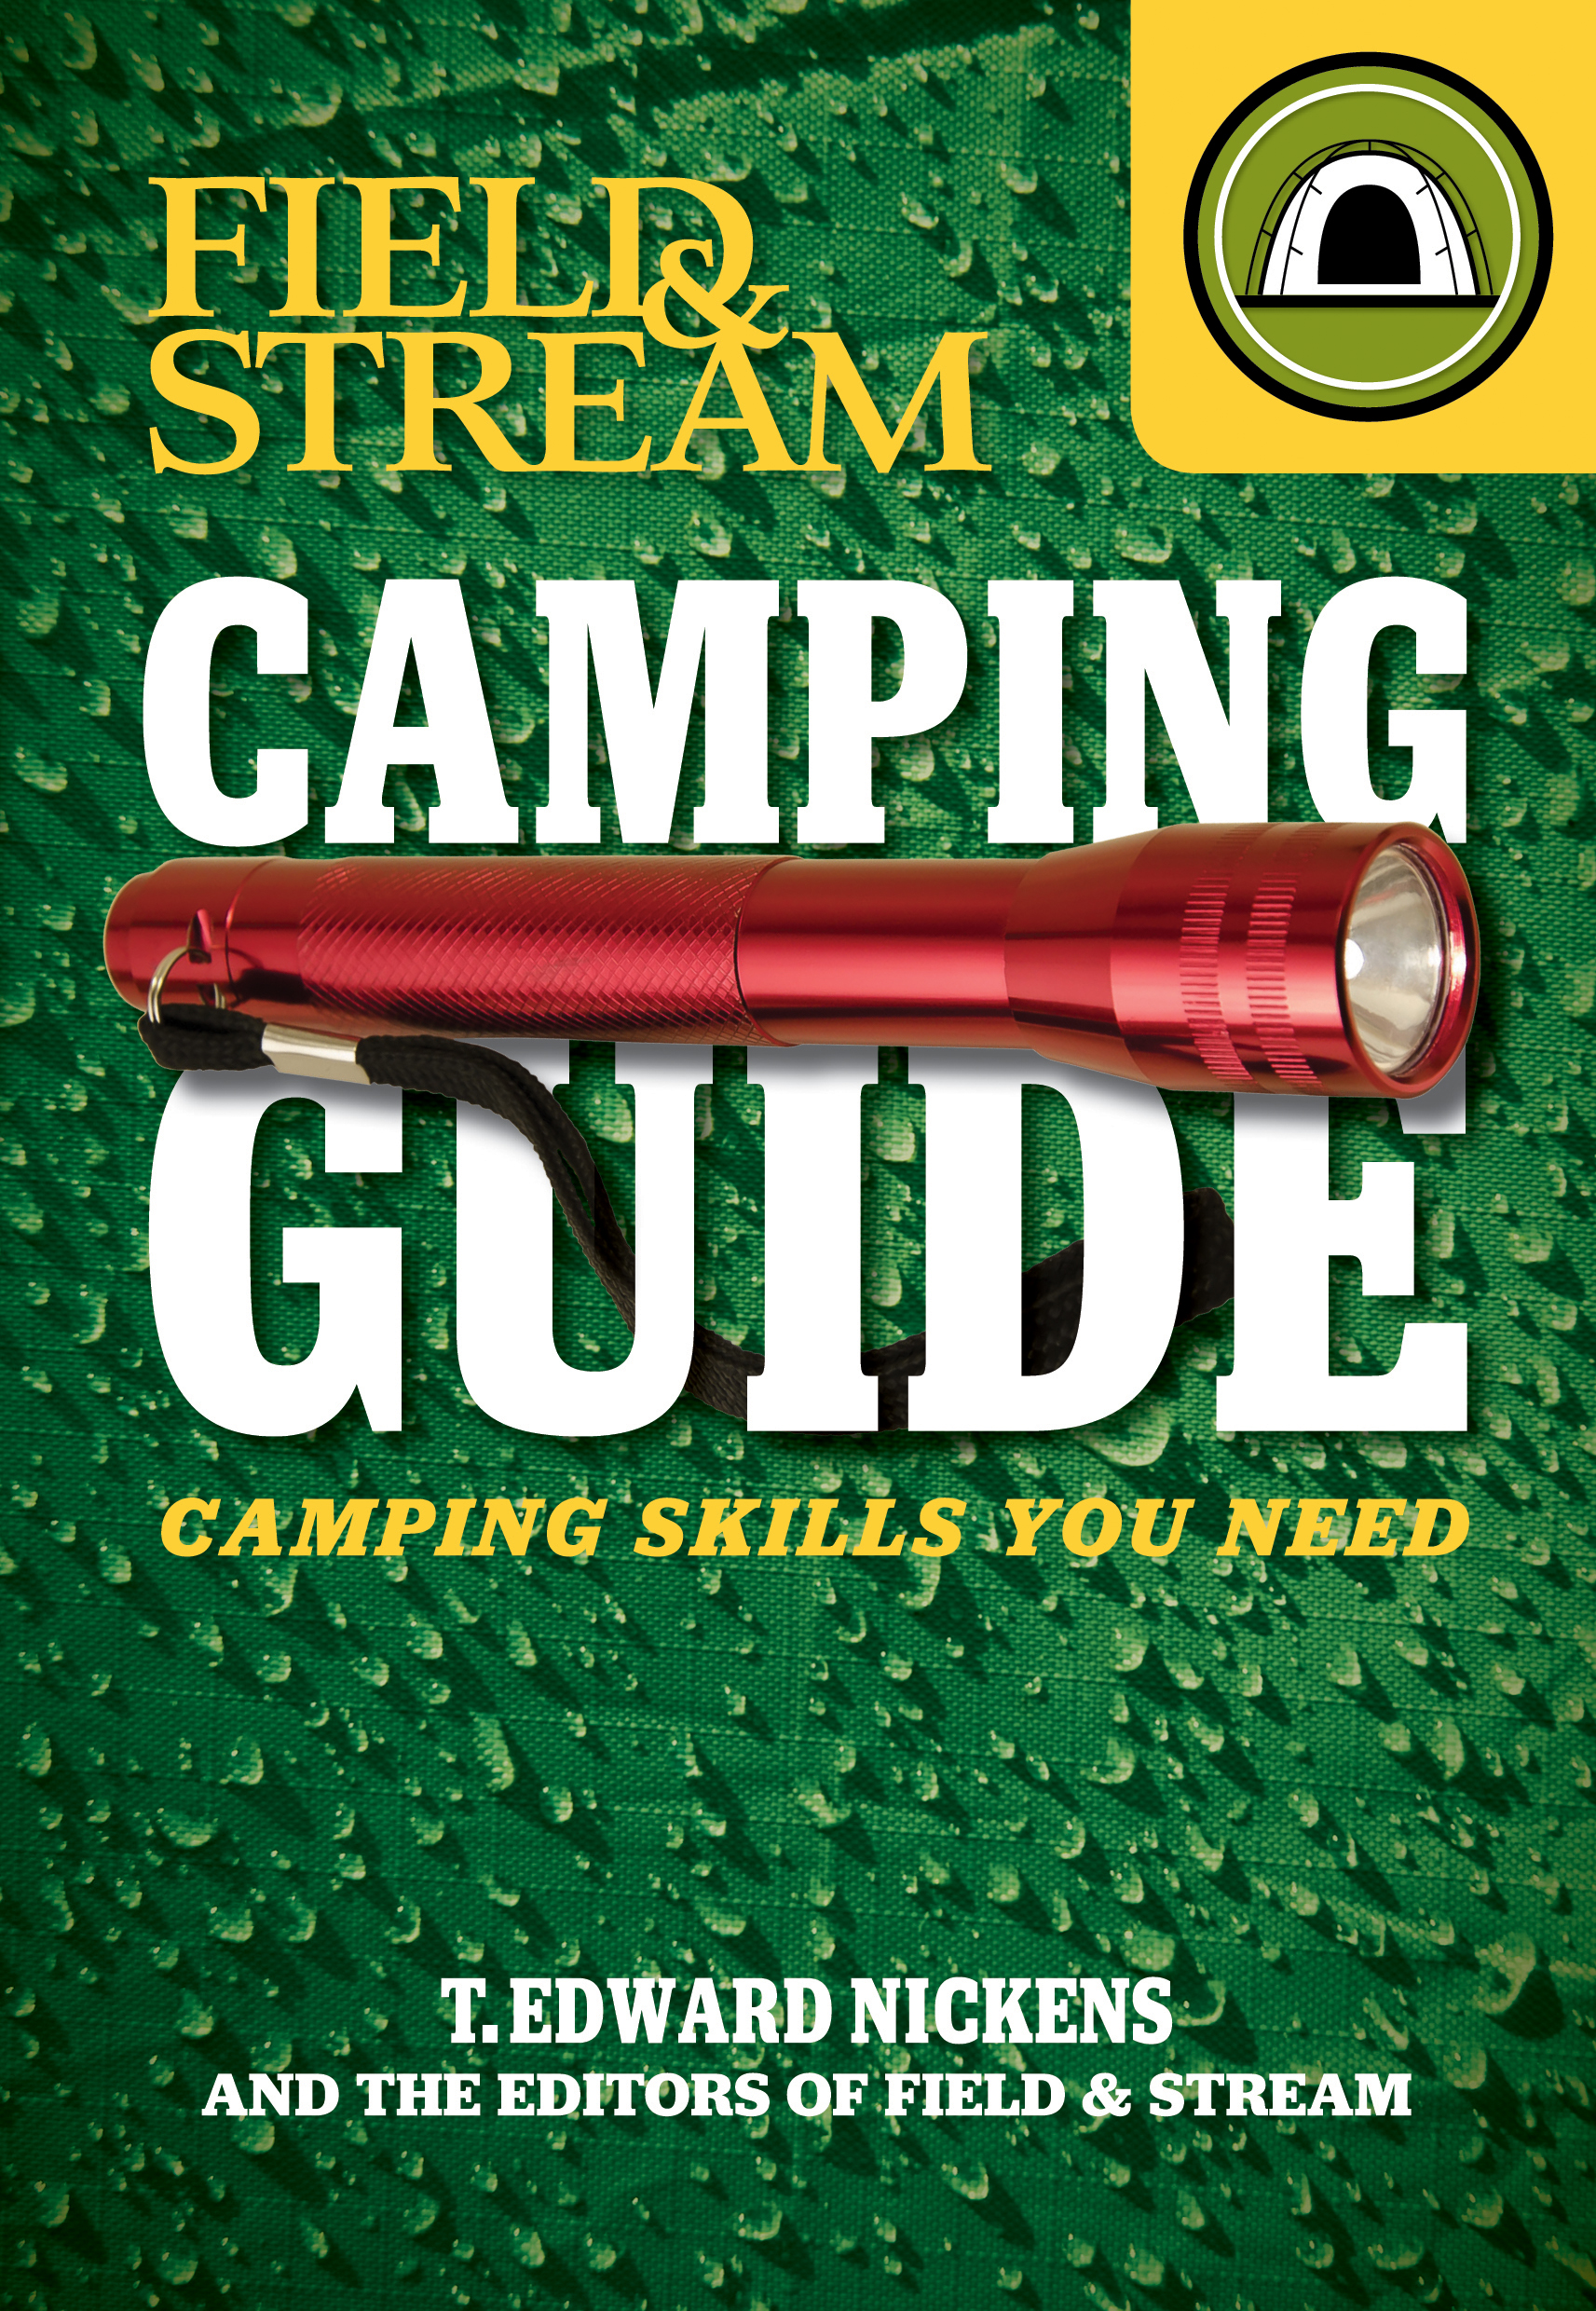 field stream skills guide camping book by t edward nickens rh simonandschuster com camping guide book australia camping guidebook for canada from 1950s